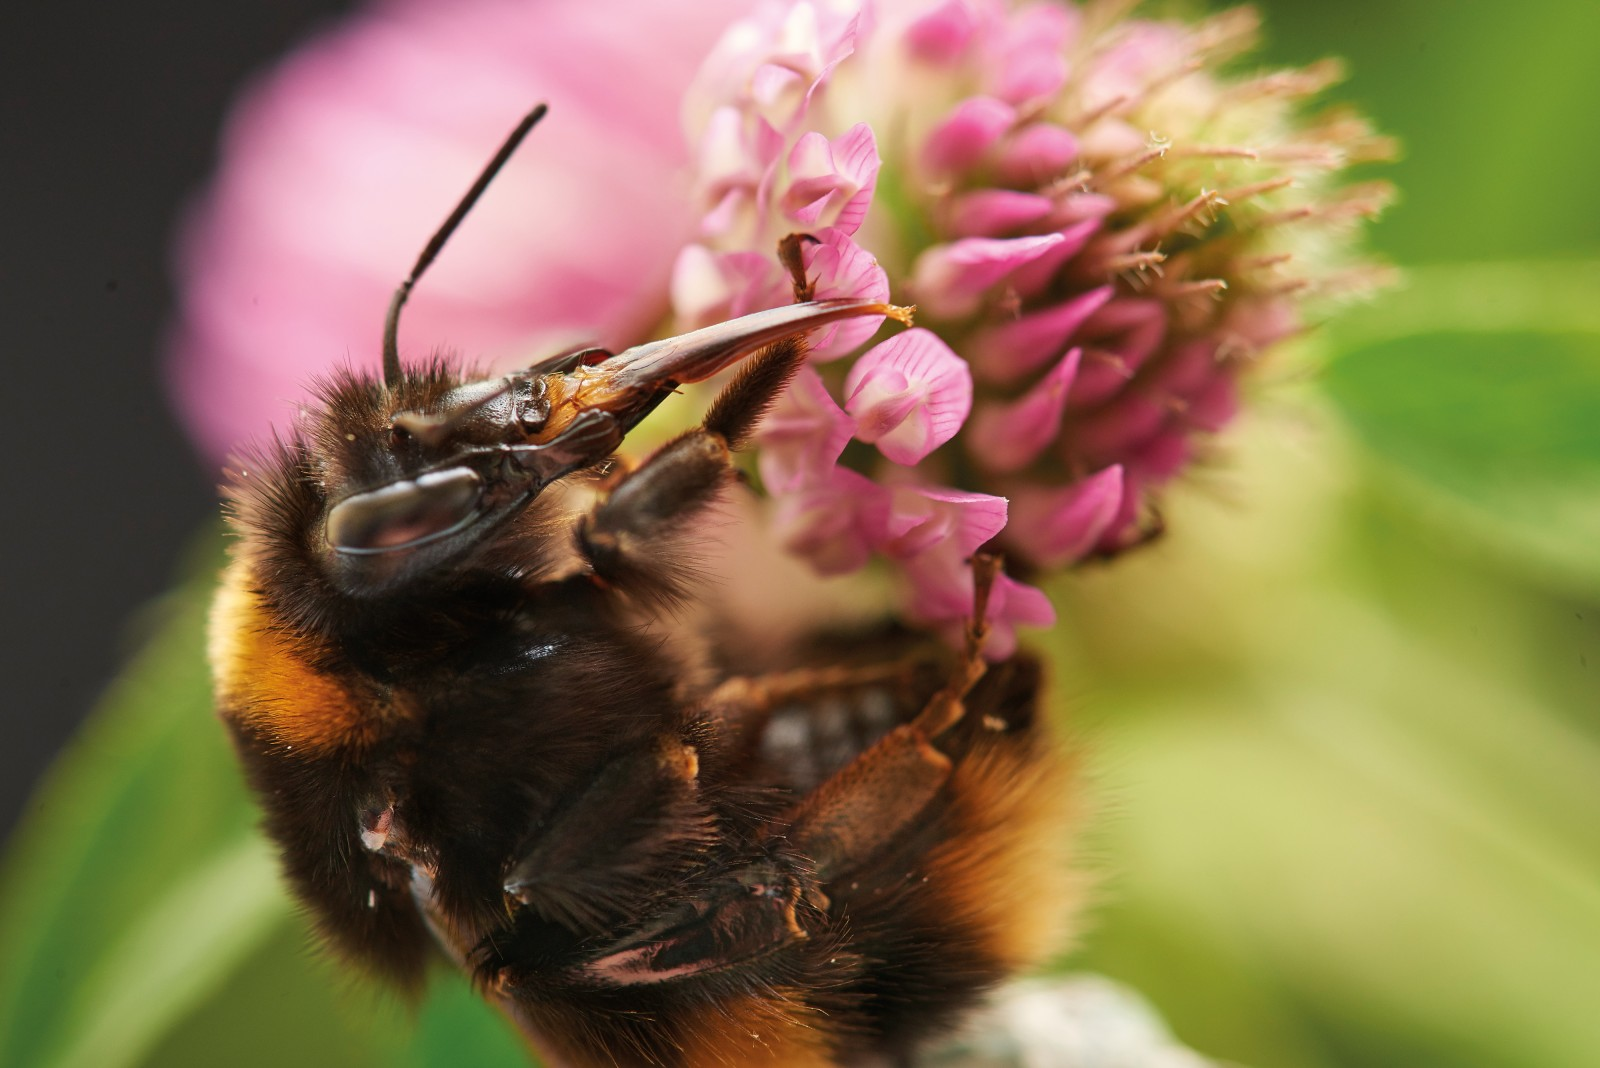 """Bumblebees were introduced to New Zealand to pollinate red clover flowers such as these. This short- tongued Bombus terrestris queen managed to lap up some nectar, but long-tongued species are better at reaching into red clover's deep florets to drink the sweet liquid. The tongues of the two long-tongued bumblebee species in New Zealand are nearly as long as their bodies. Sometimes short-tongued bumblebees """"cheat"""" by puncturing a hole in the side of deep florets to gain access."""